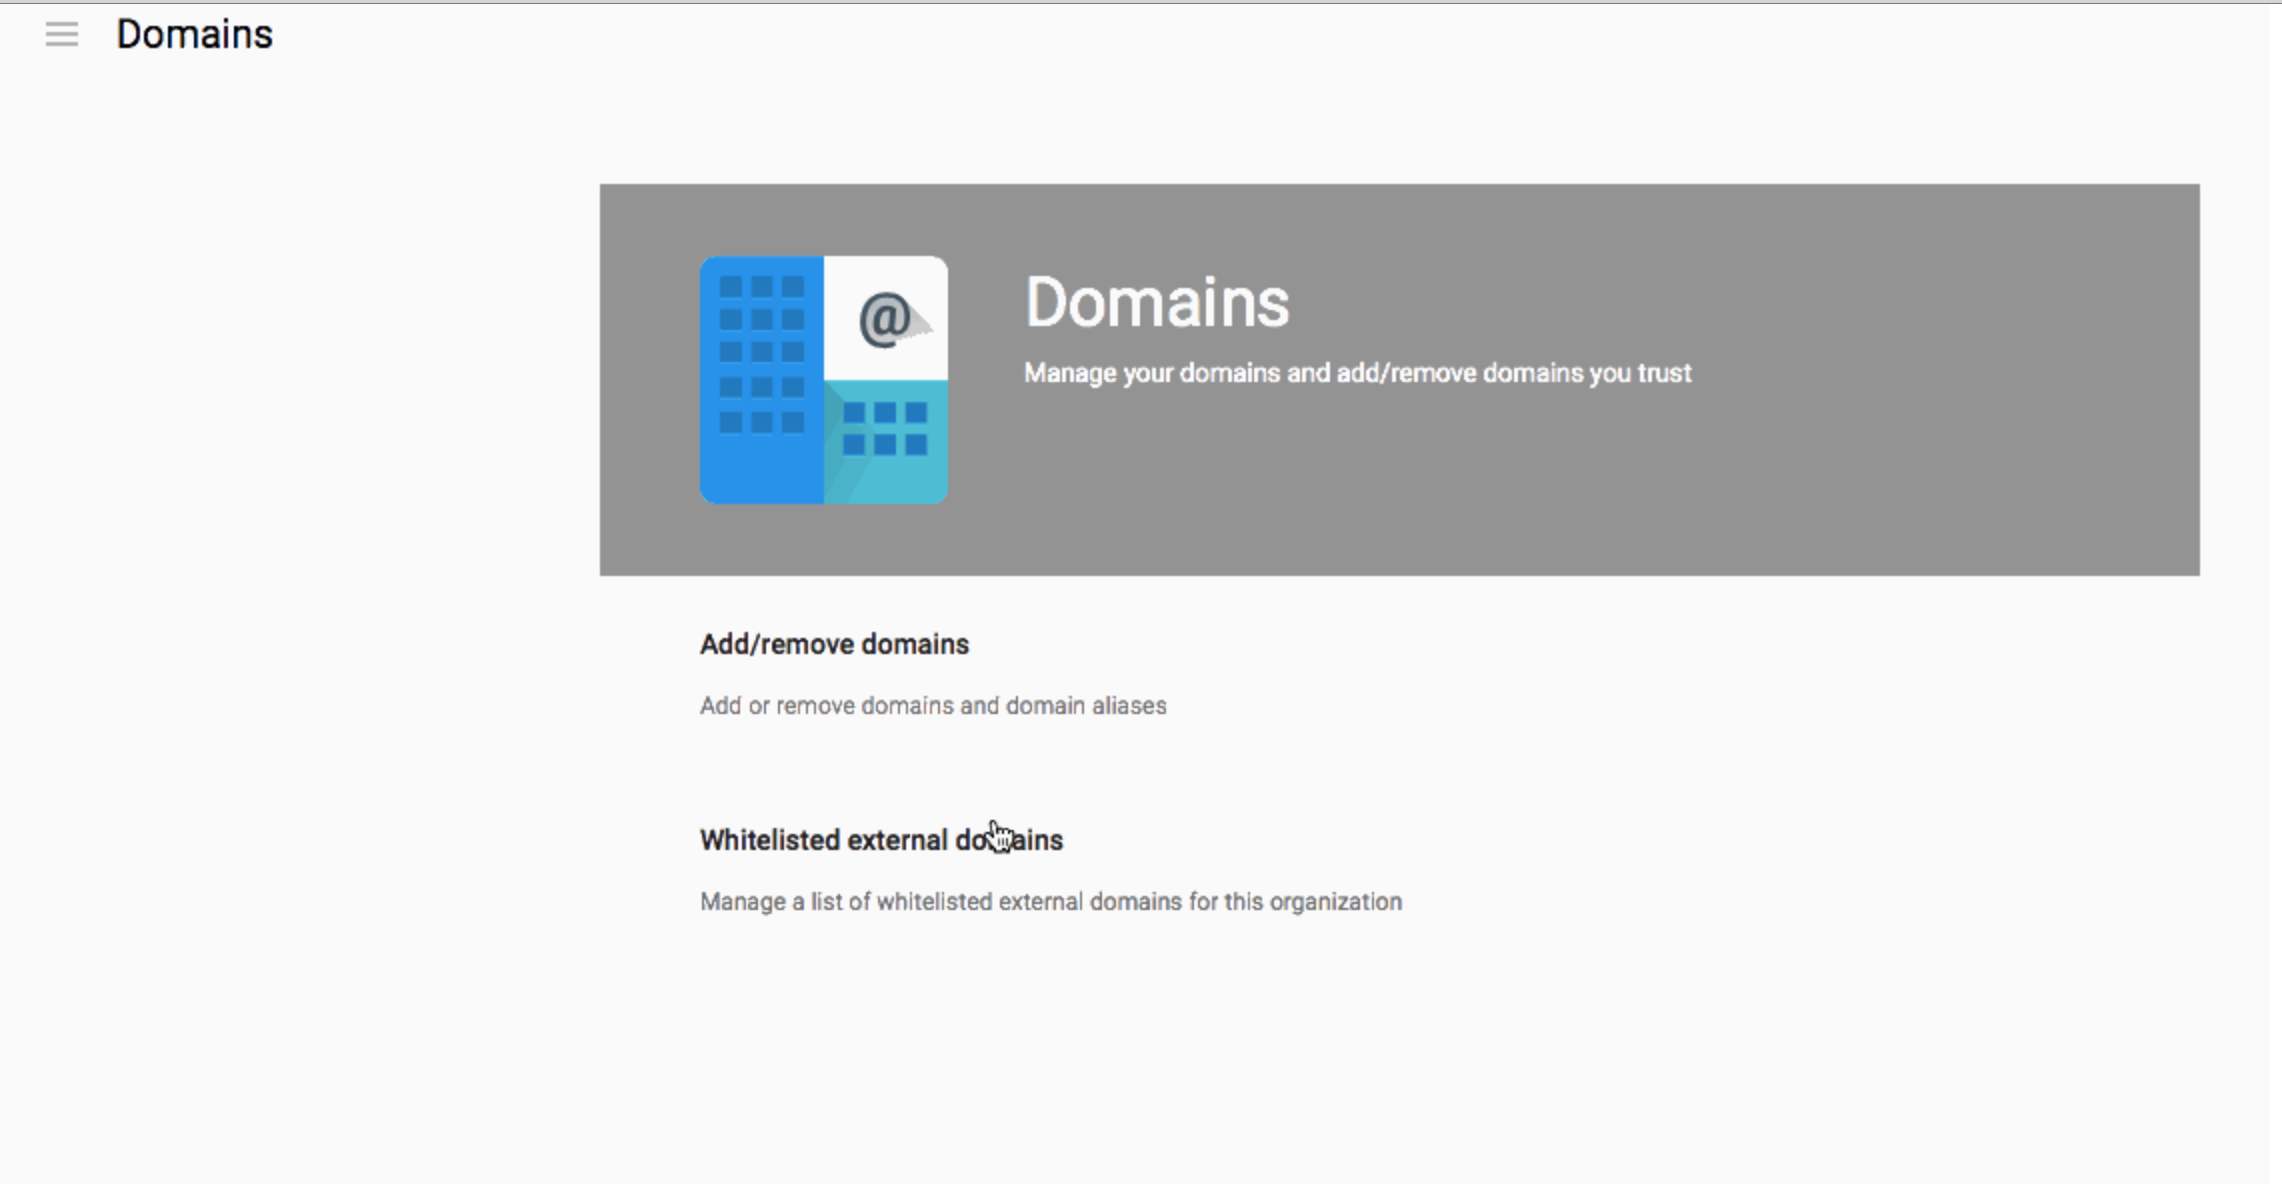 Google Apps customers can now whitelist external domains for